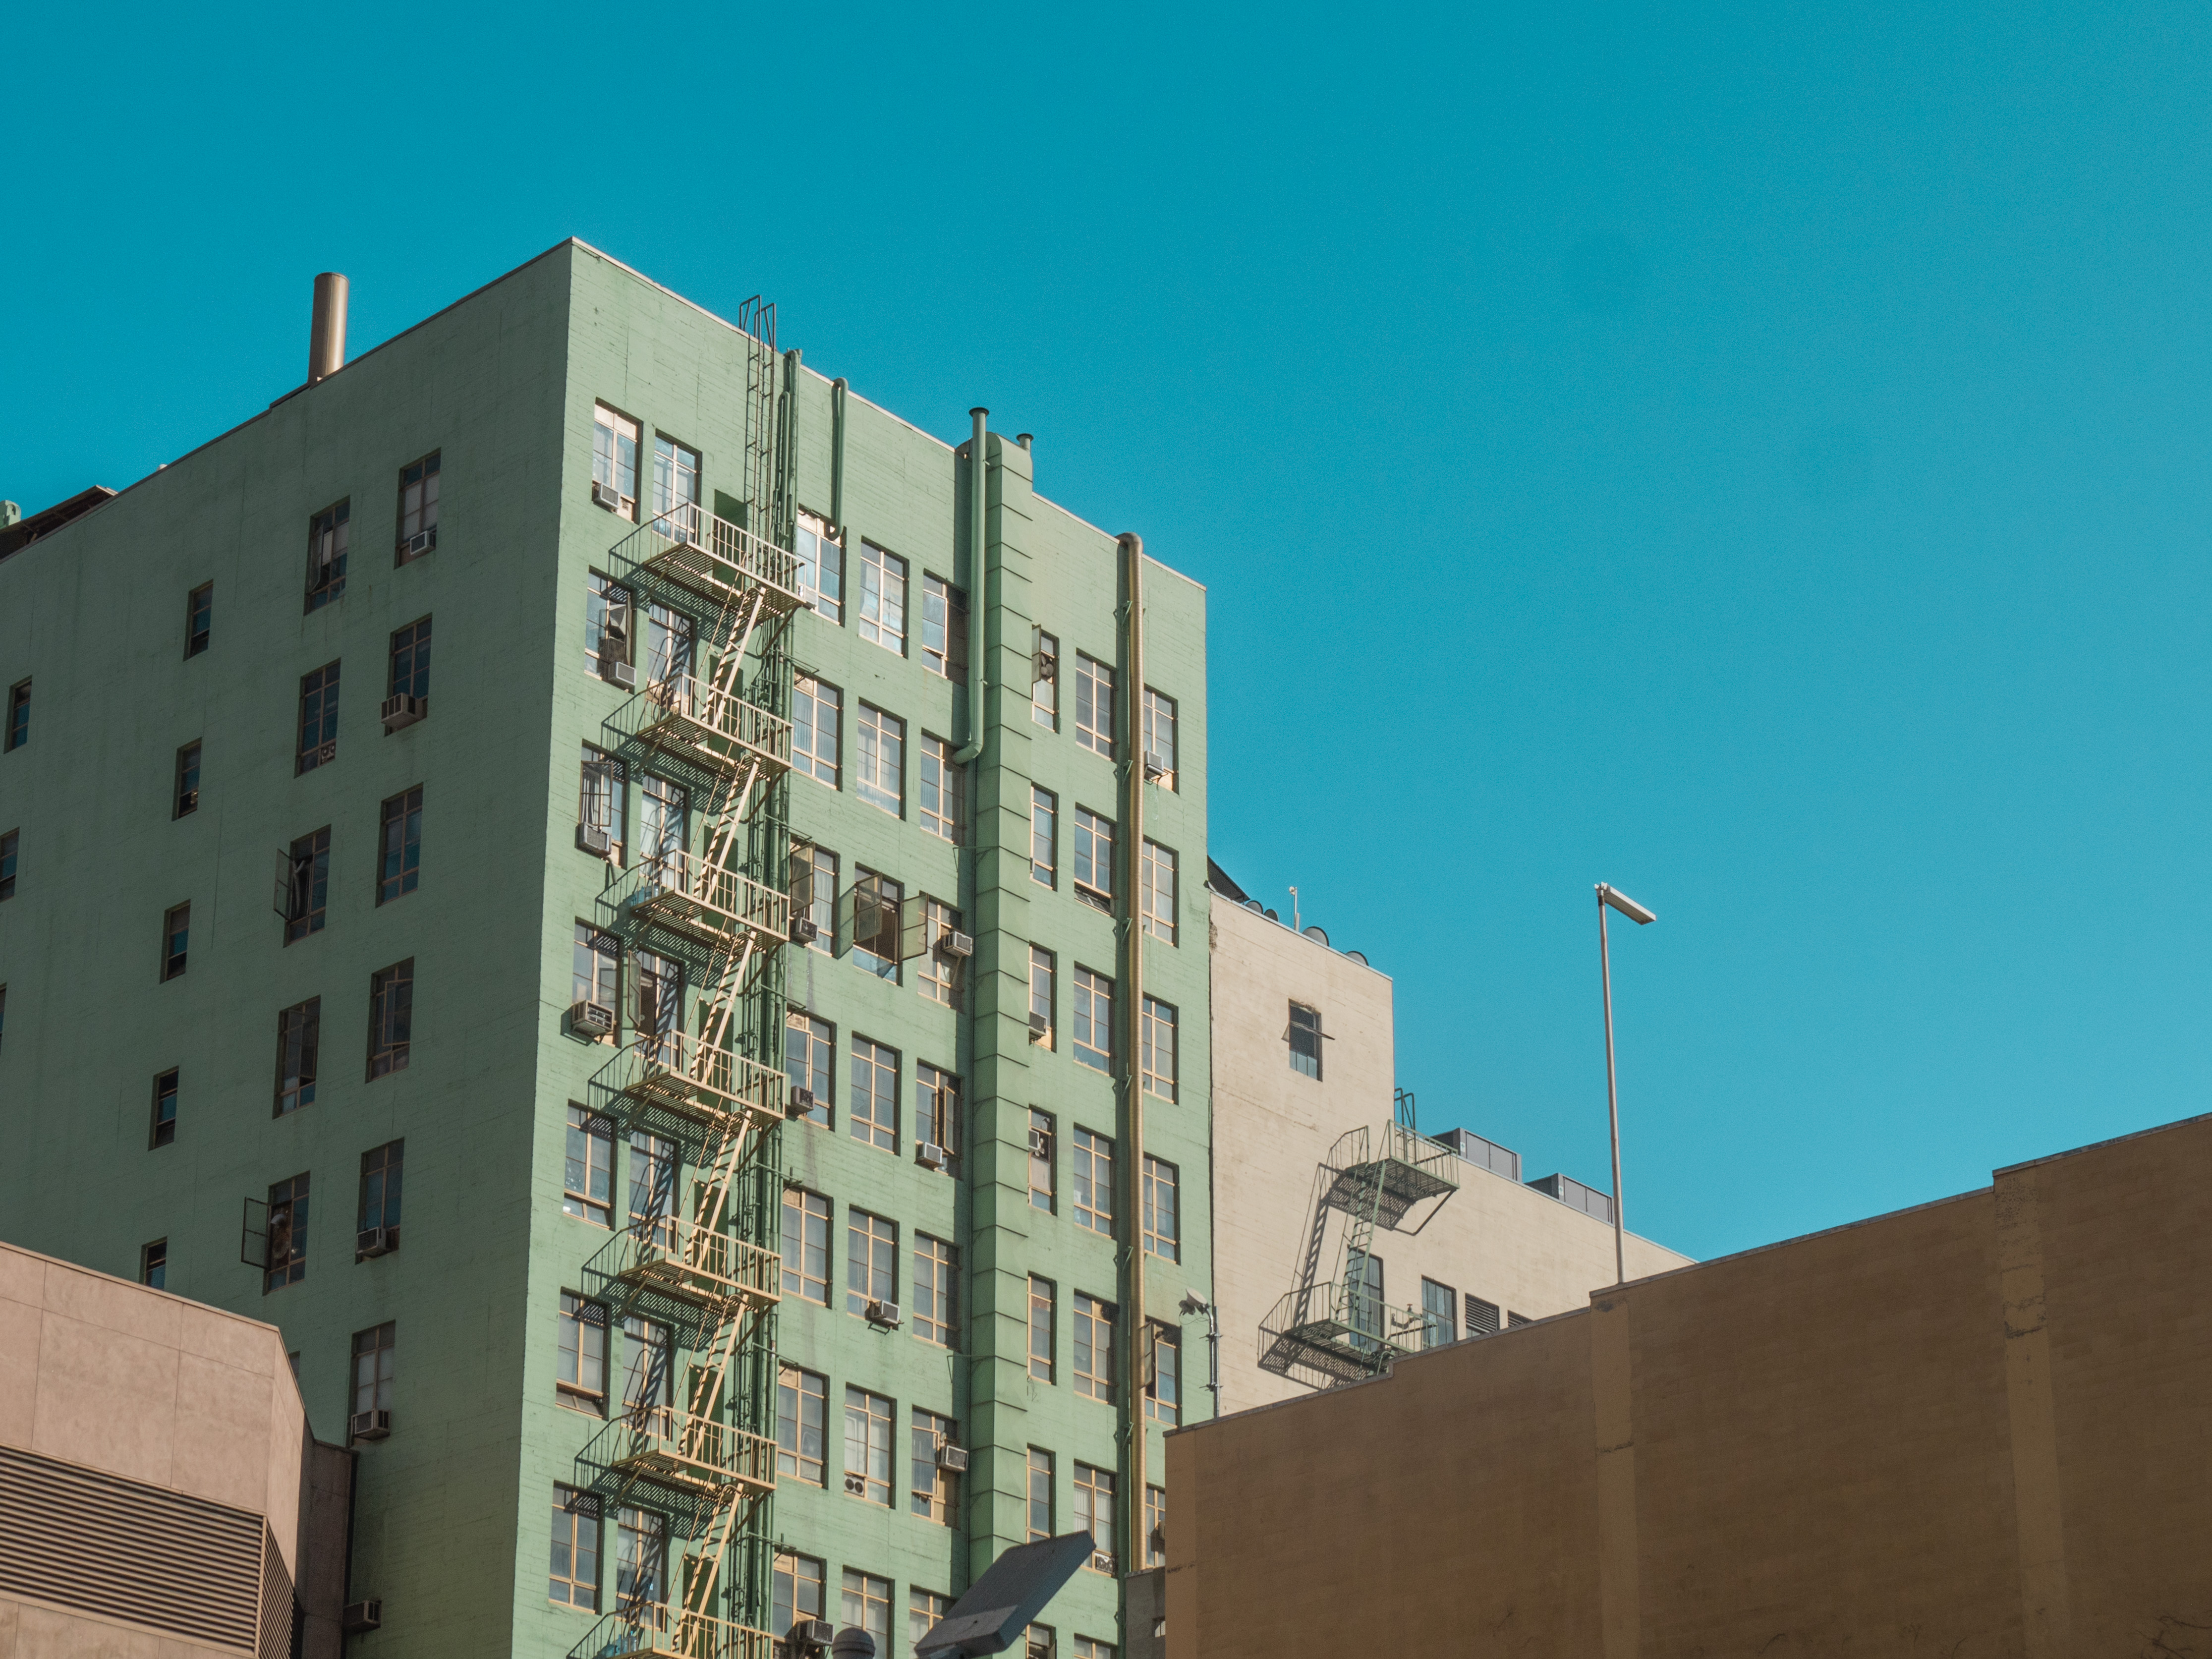 A tall turquoise building with a fire escape sandwiched next to a tan stucco building against a blue sky.